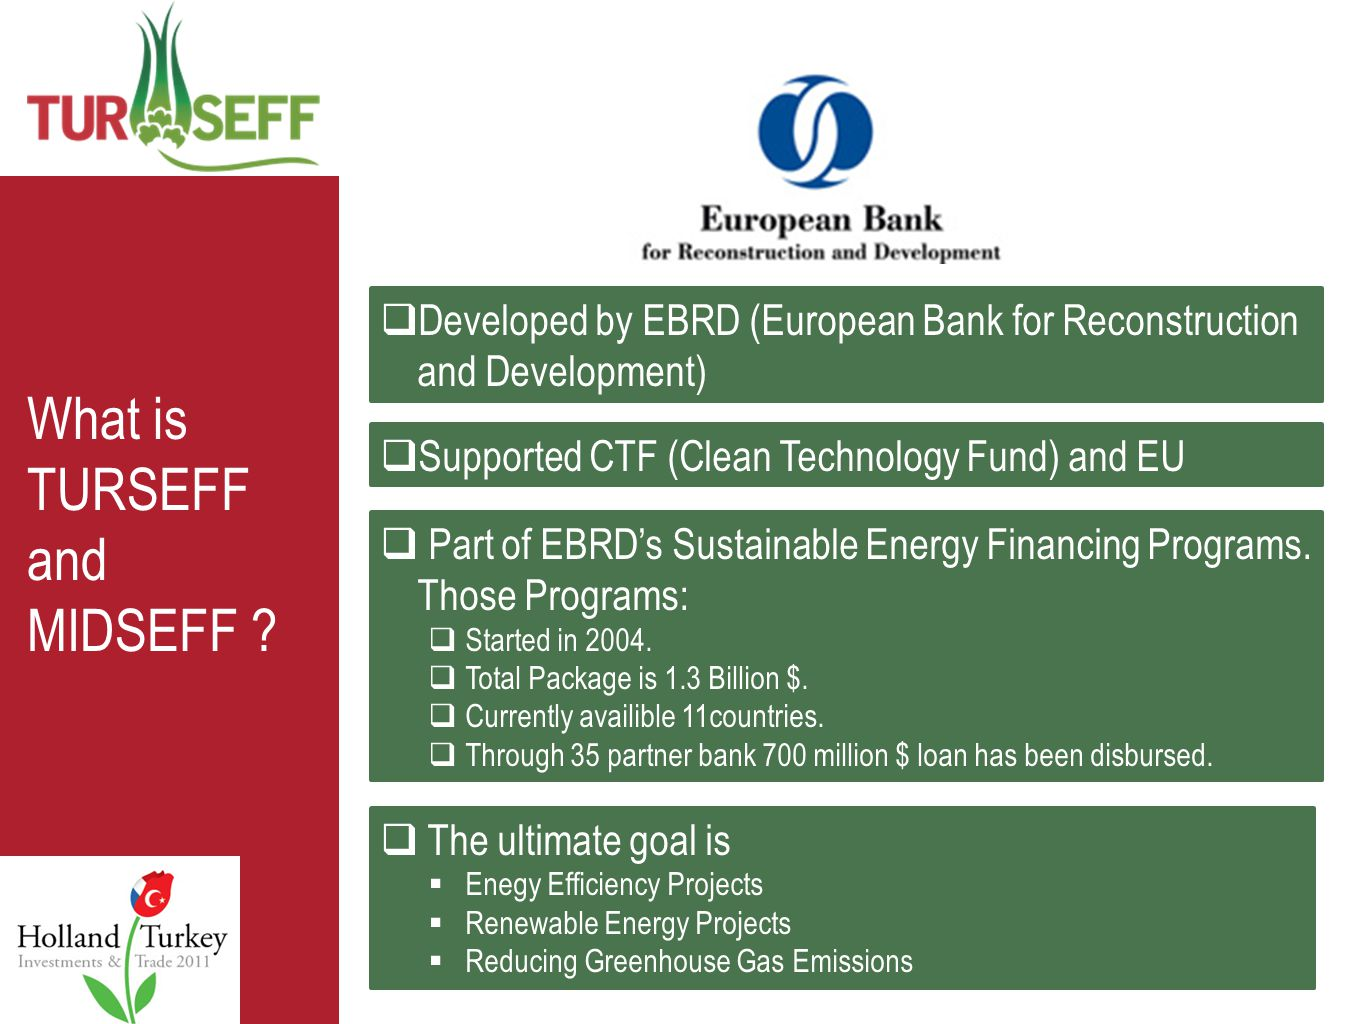  Developed by EBRD (European Bank for Reconstruction and Development)  Part of EBRD's Sustainable Energy Financing Programs.